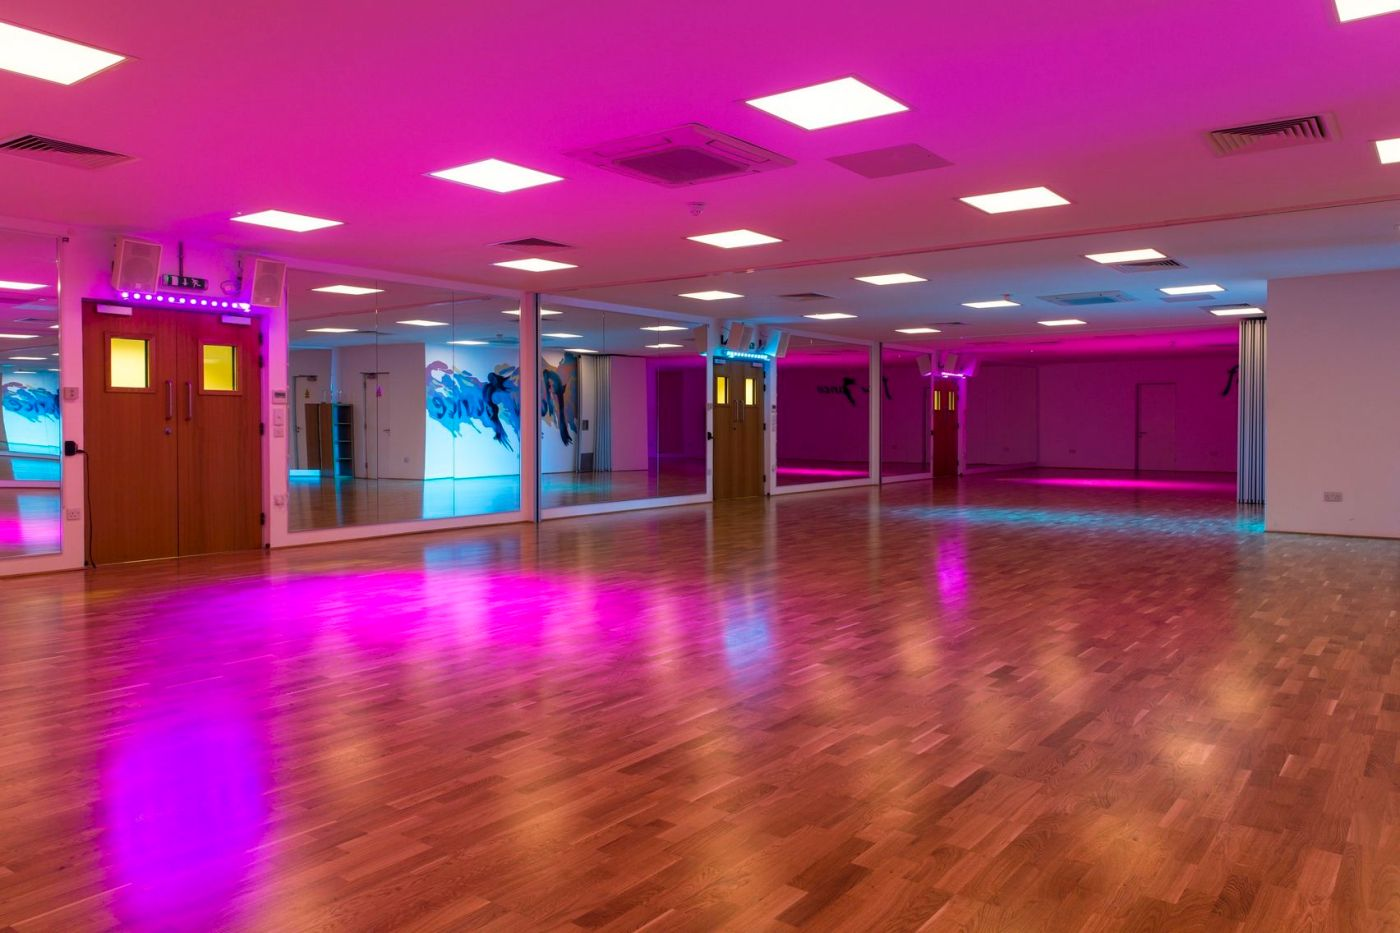 Large dance studio with mirror lining one wall and pink mood lighting.